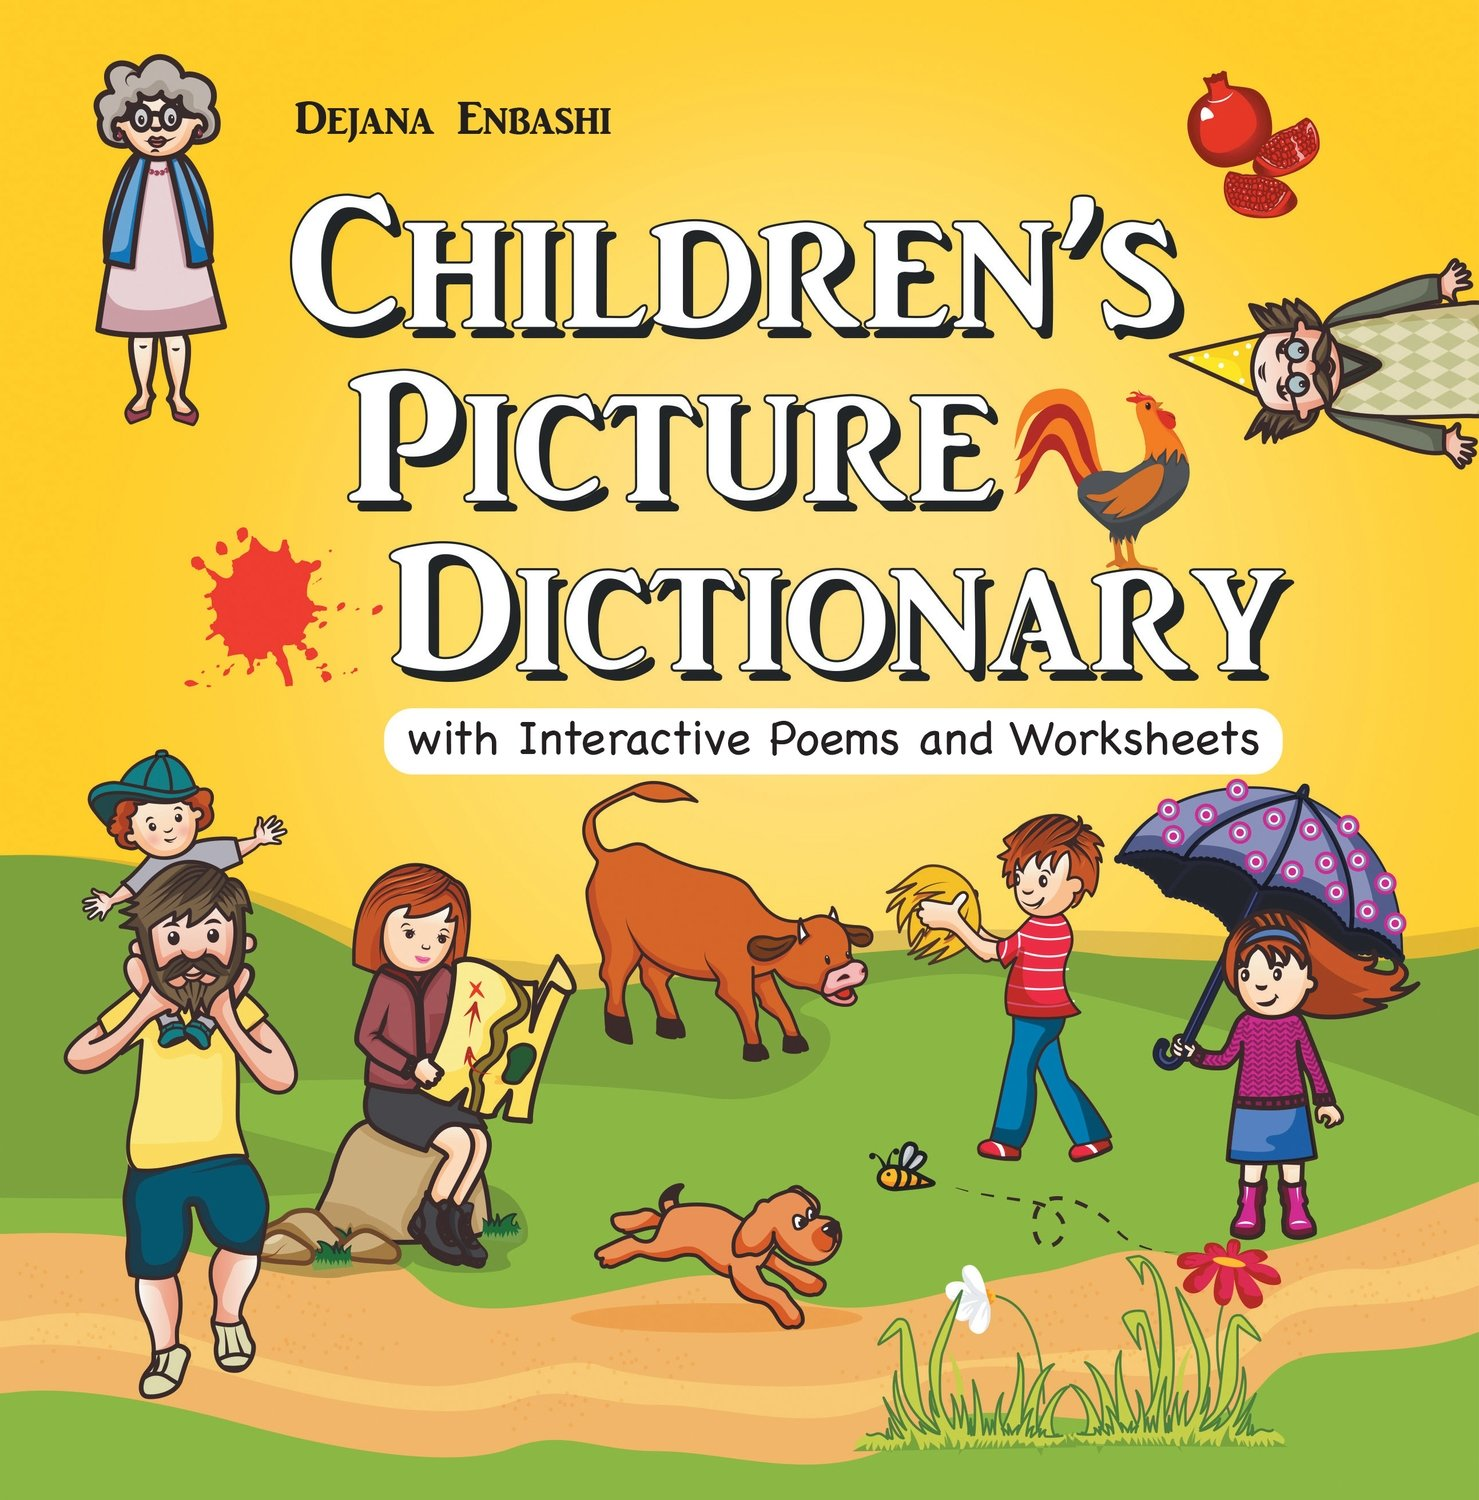 Children's Picture Dictionary with Interactive Poems and Worksheets (Hardcover)